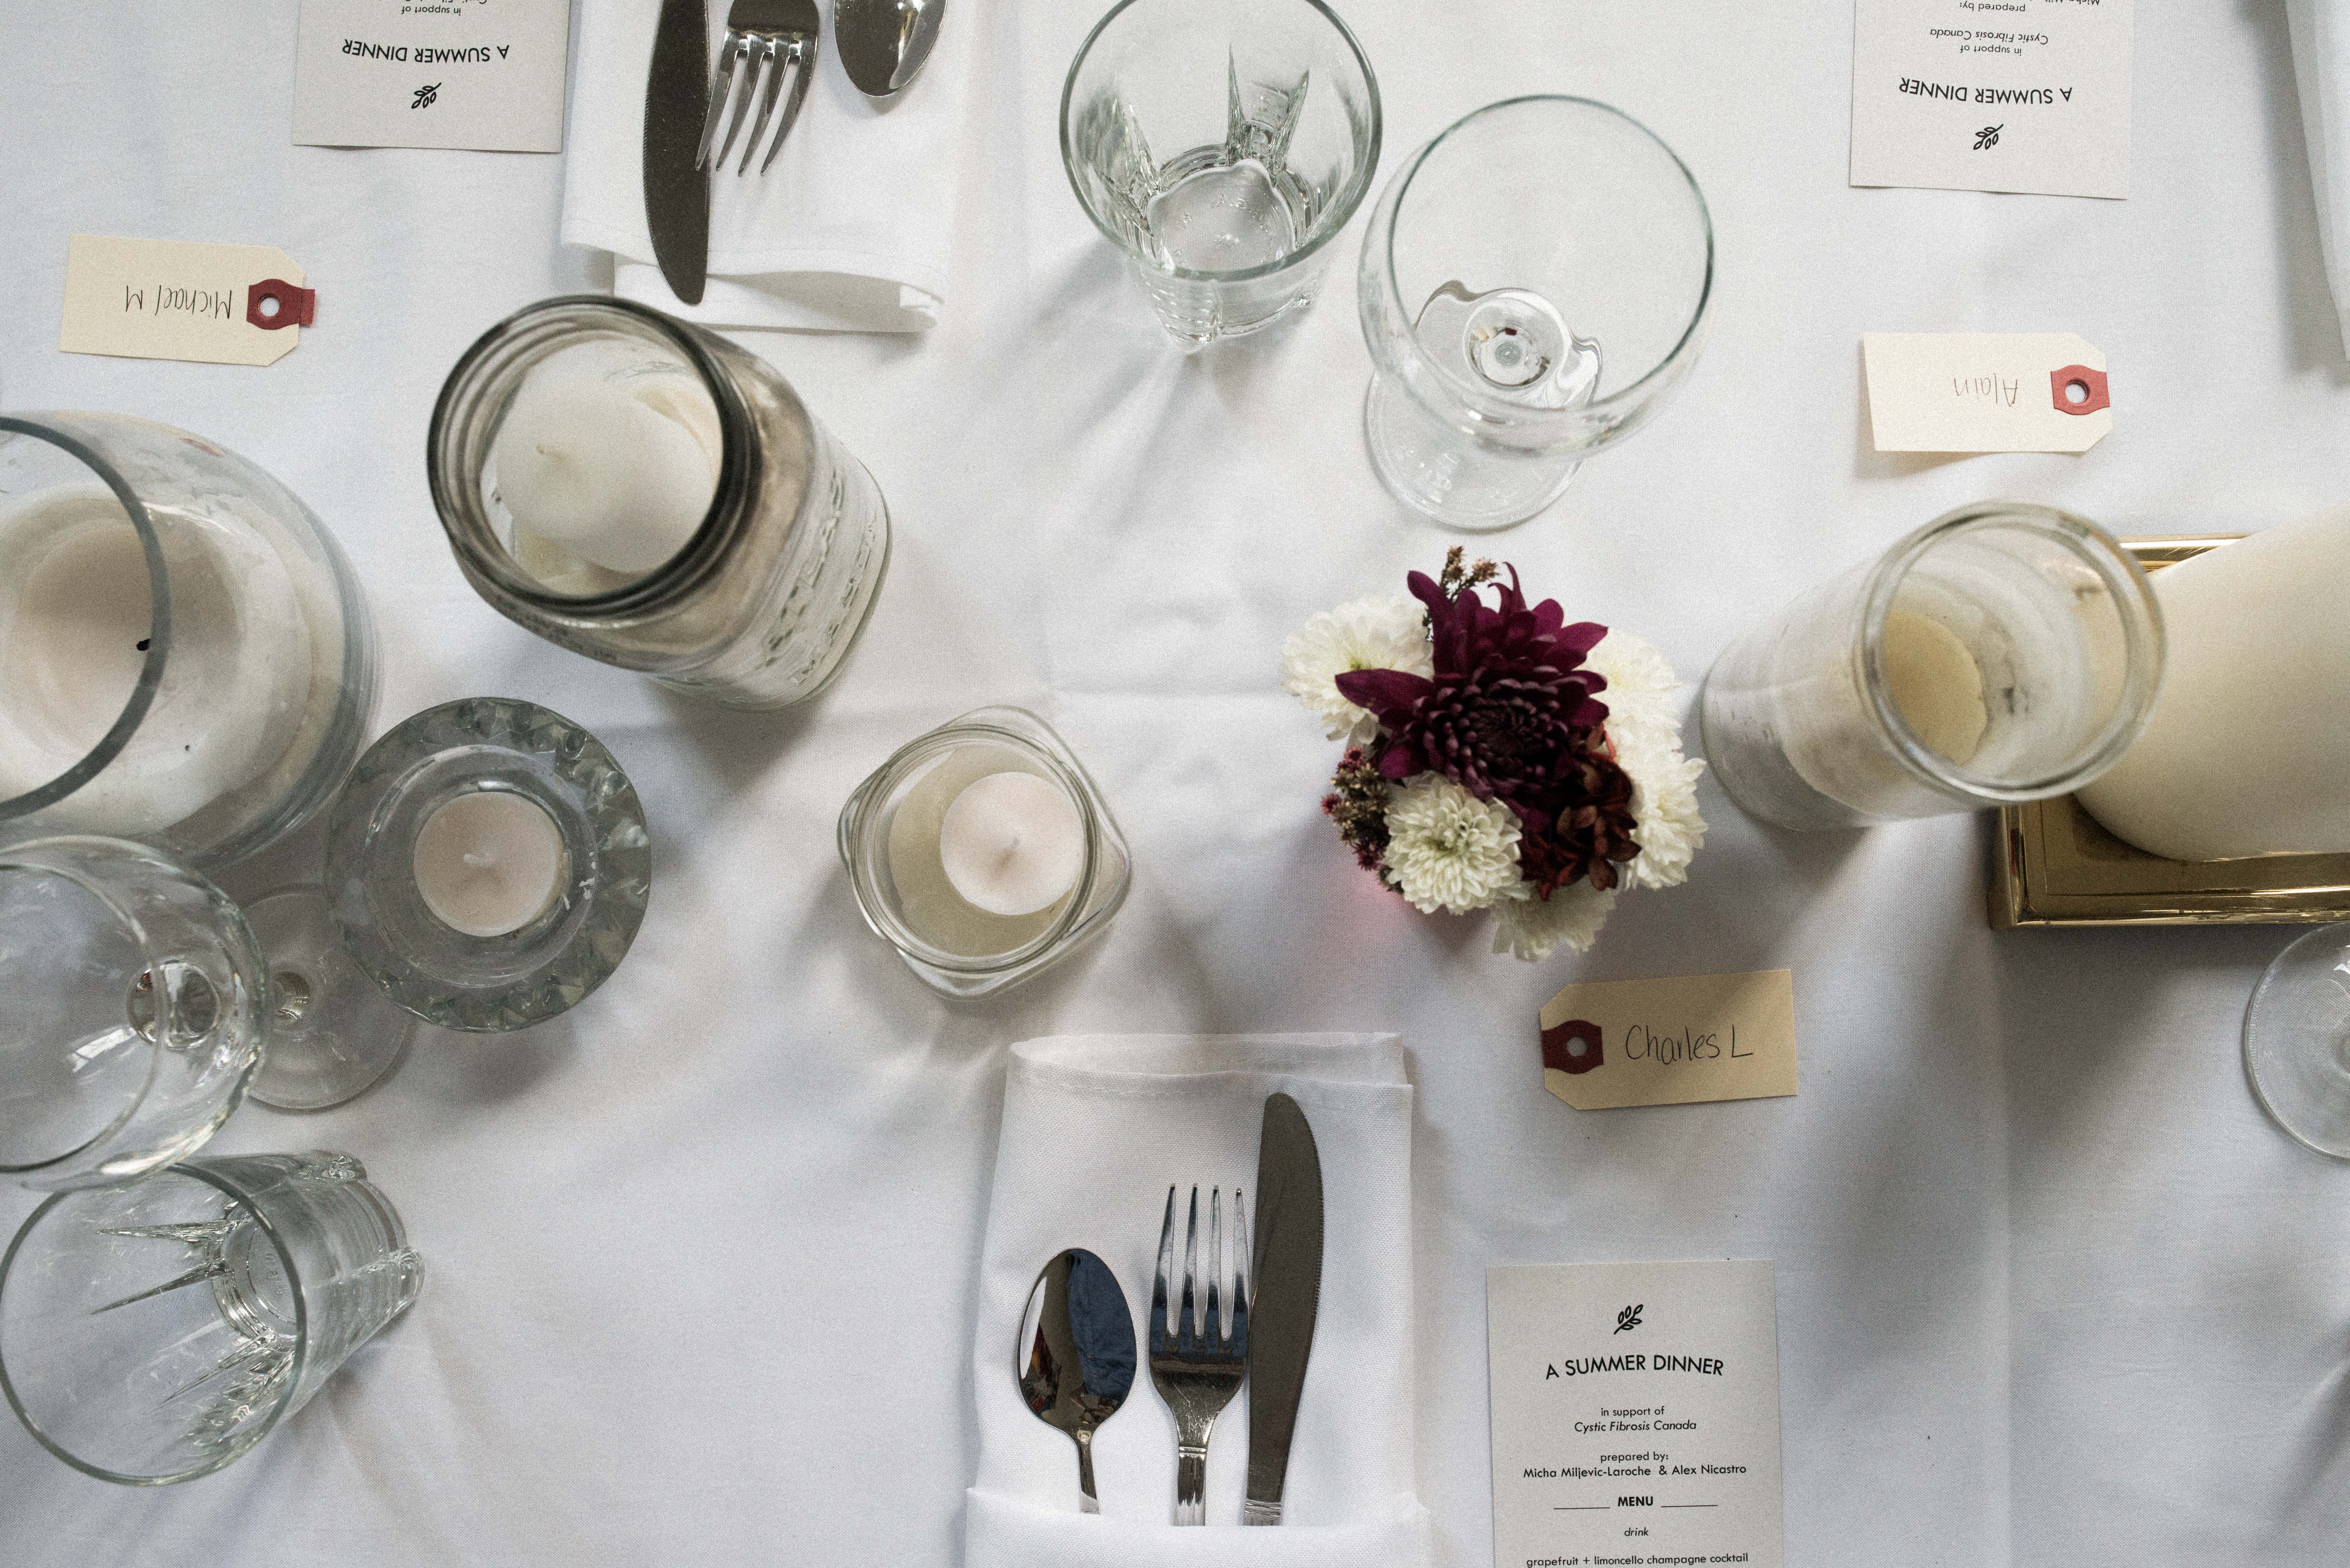 A Summer Dinner Table Setting